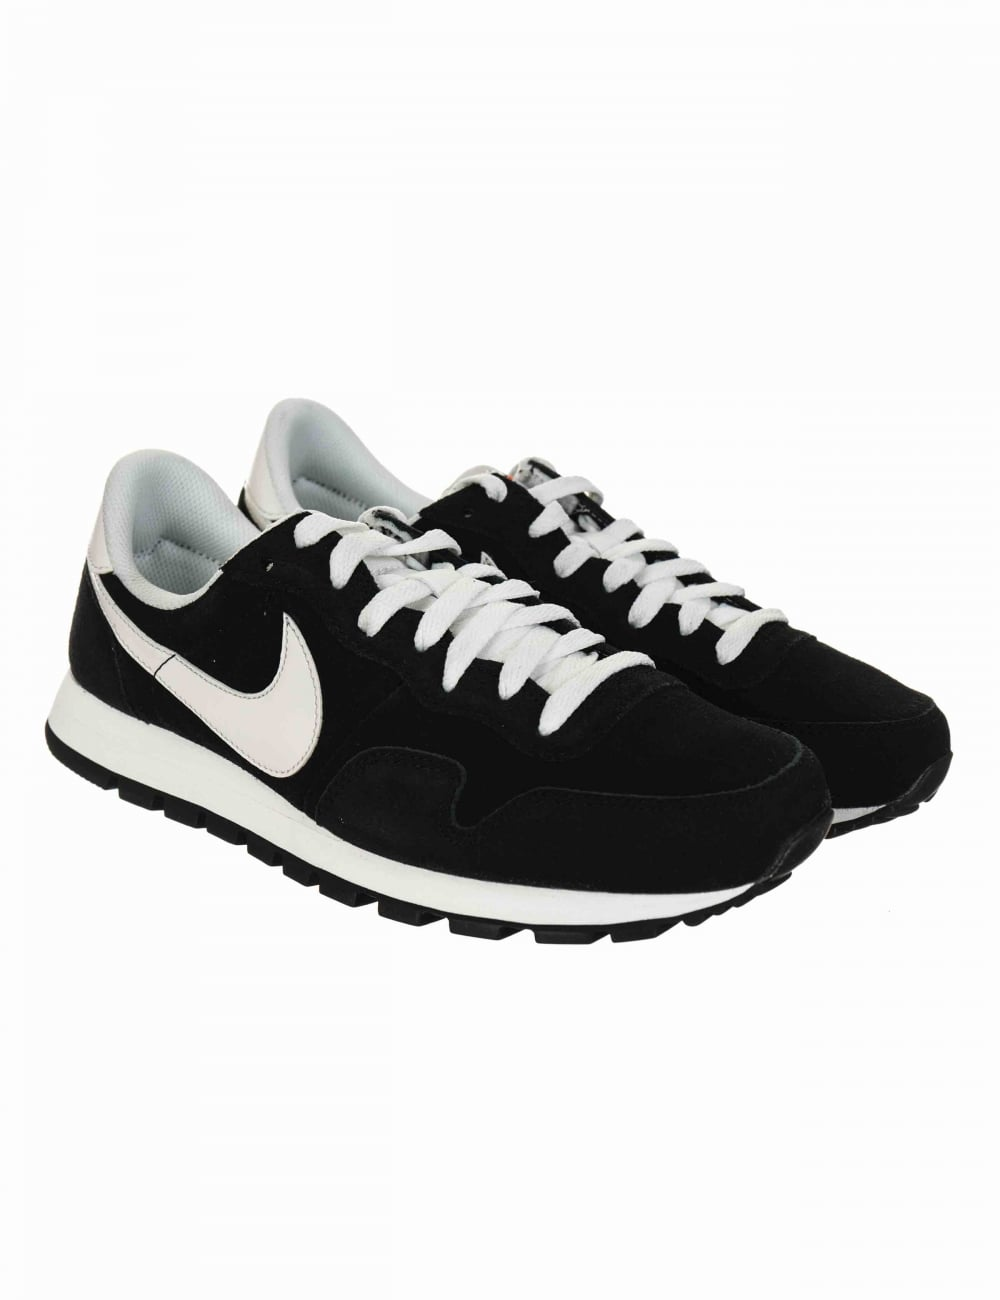 aff99924867a0 Nike Air Pegasus 83 Shoes - Black Summit White-Sail - Footwear from ...